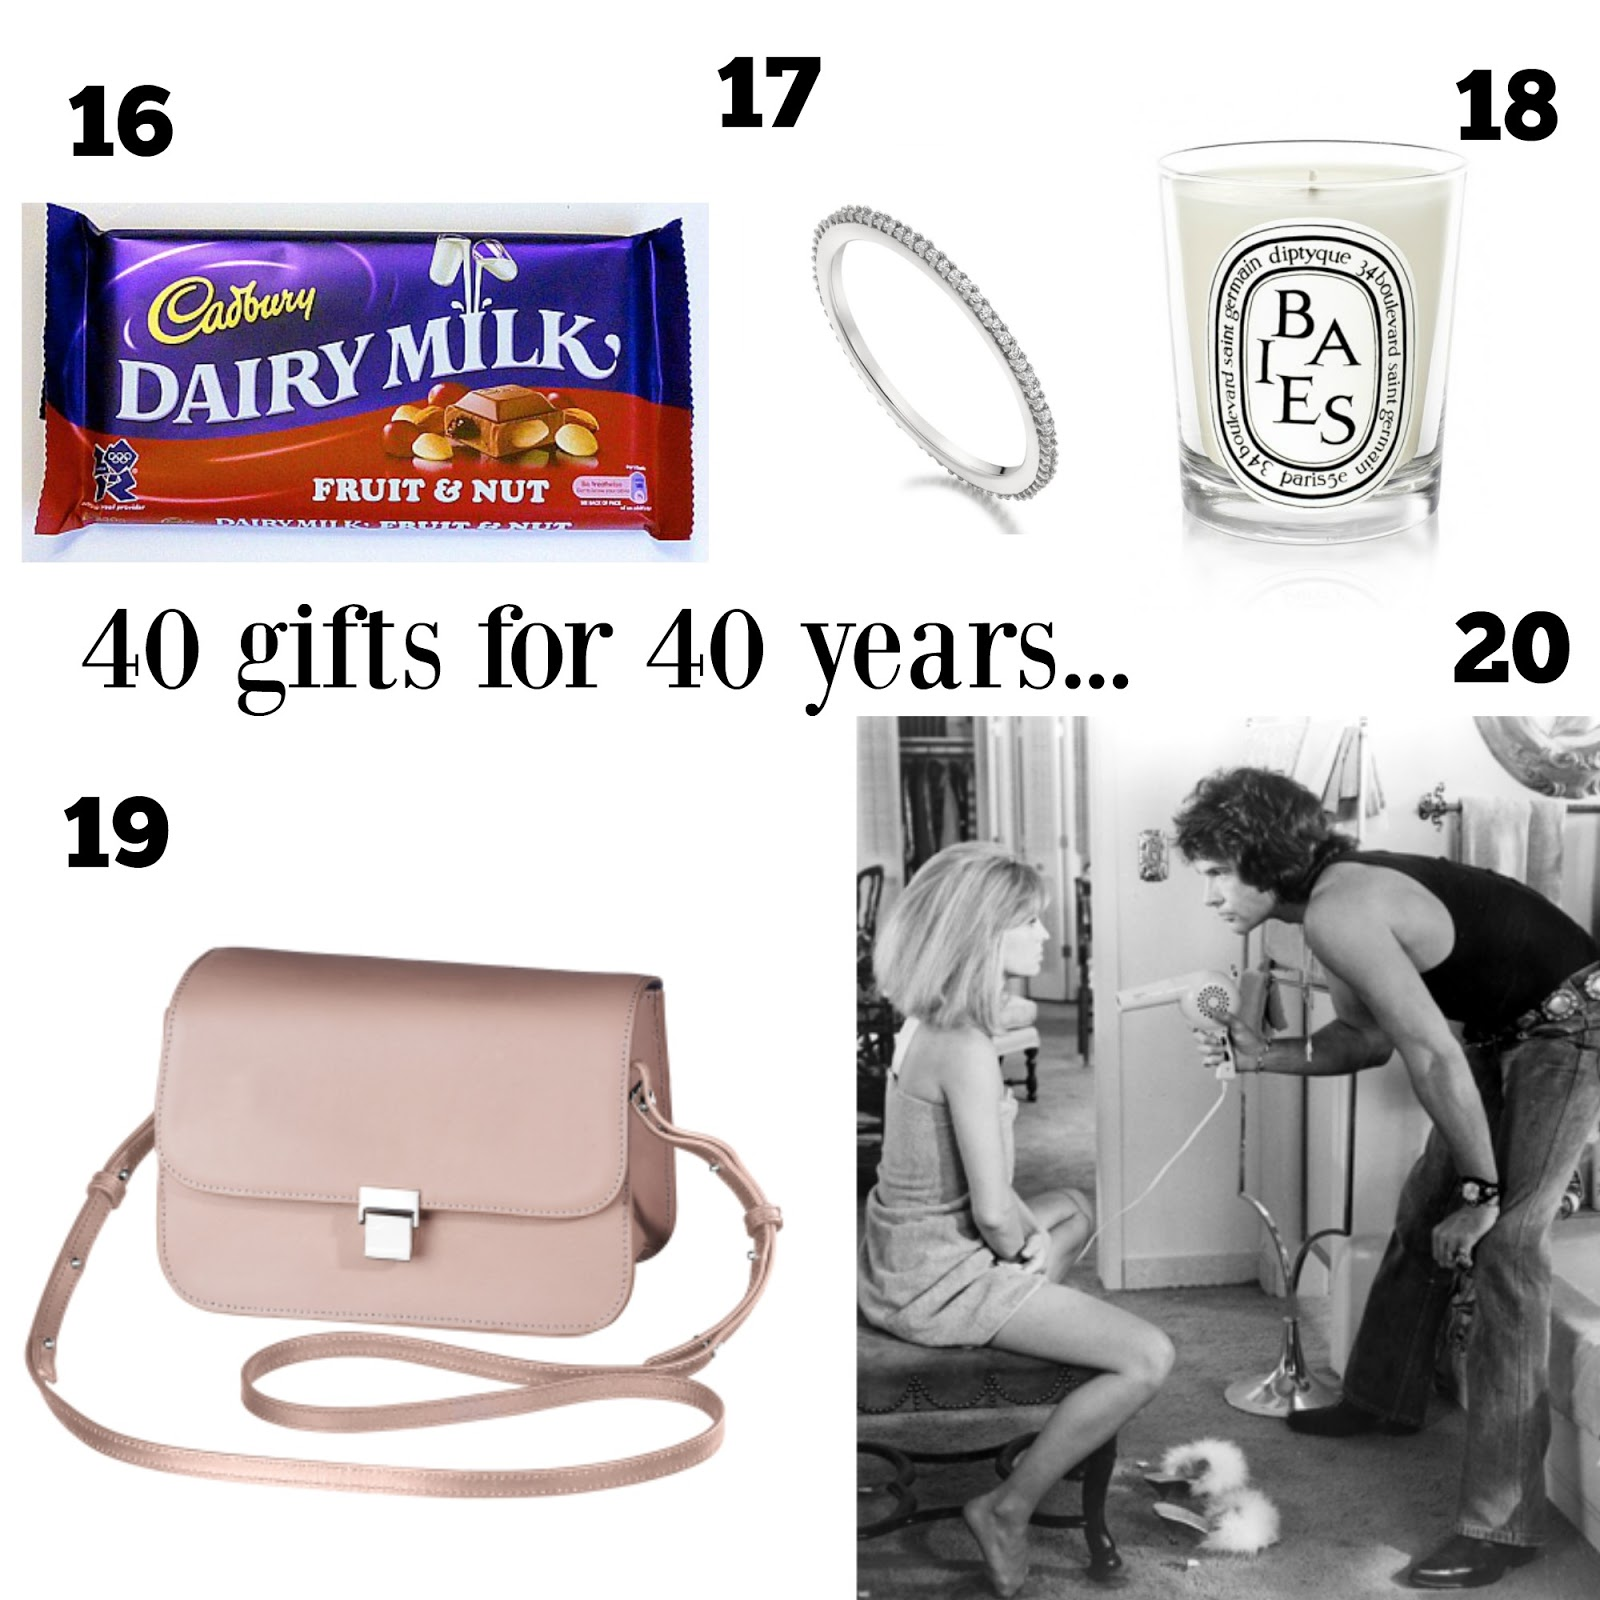 mamasVIB | V. I. BUYS: This is 40! The Birthday Wish List - 40 gifts from £1.50 to Priceless